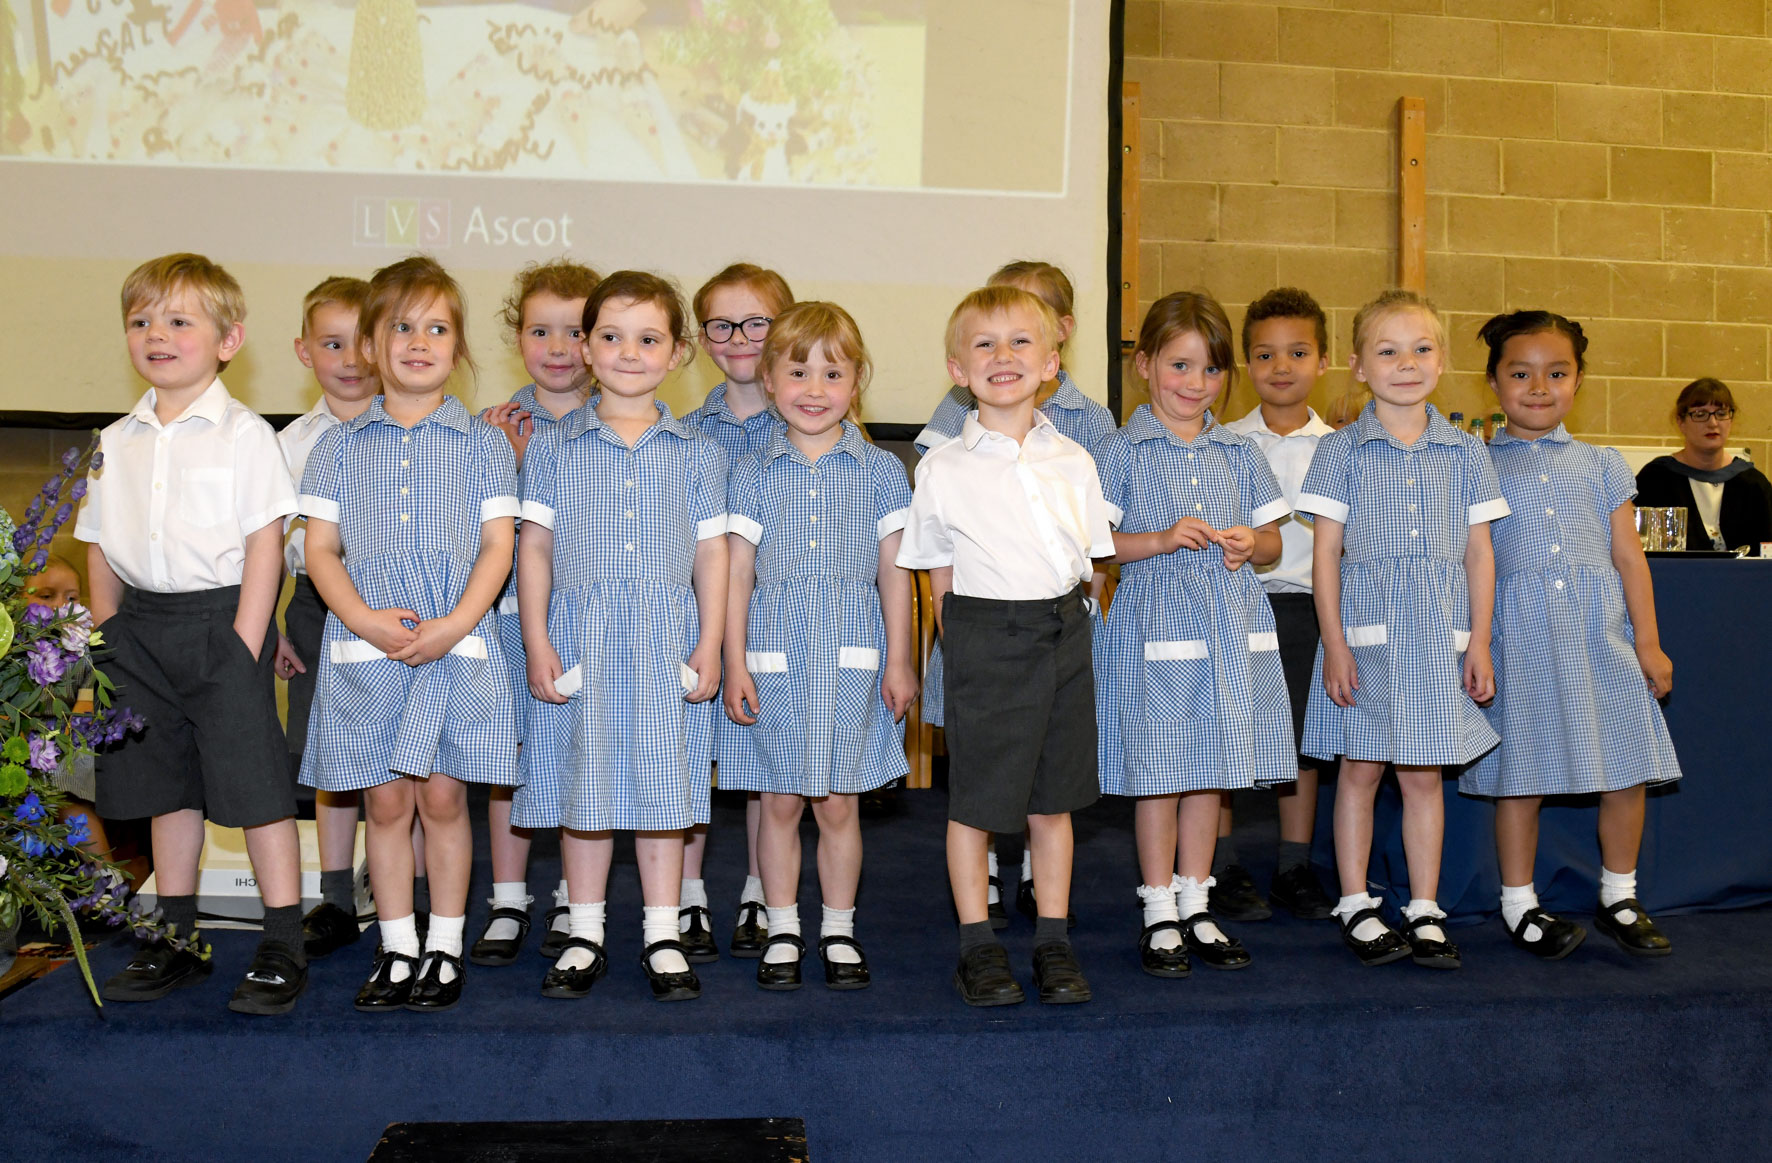 08.07.19. LVS Ascot's youngest pupils, the Reception class, enjoy their moment on stage at Celebration Day